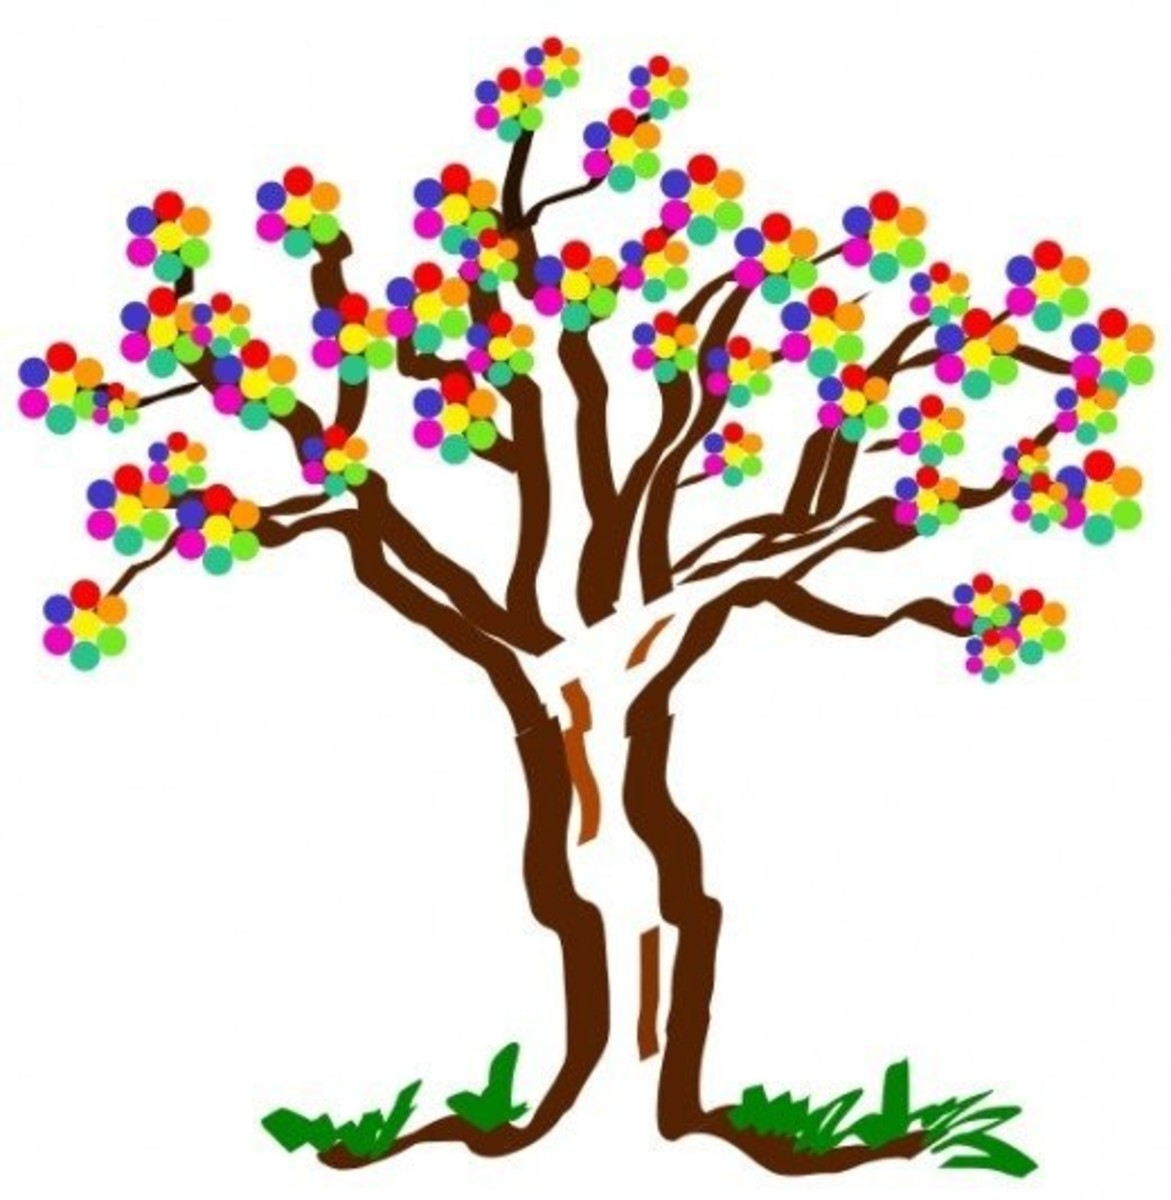 Tree with Multi-Colored Flowers